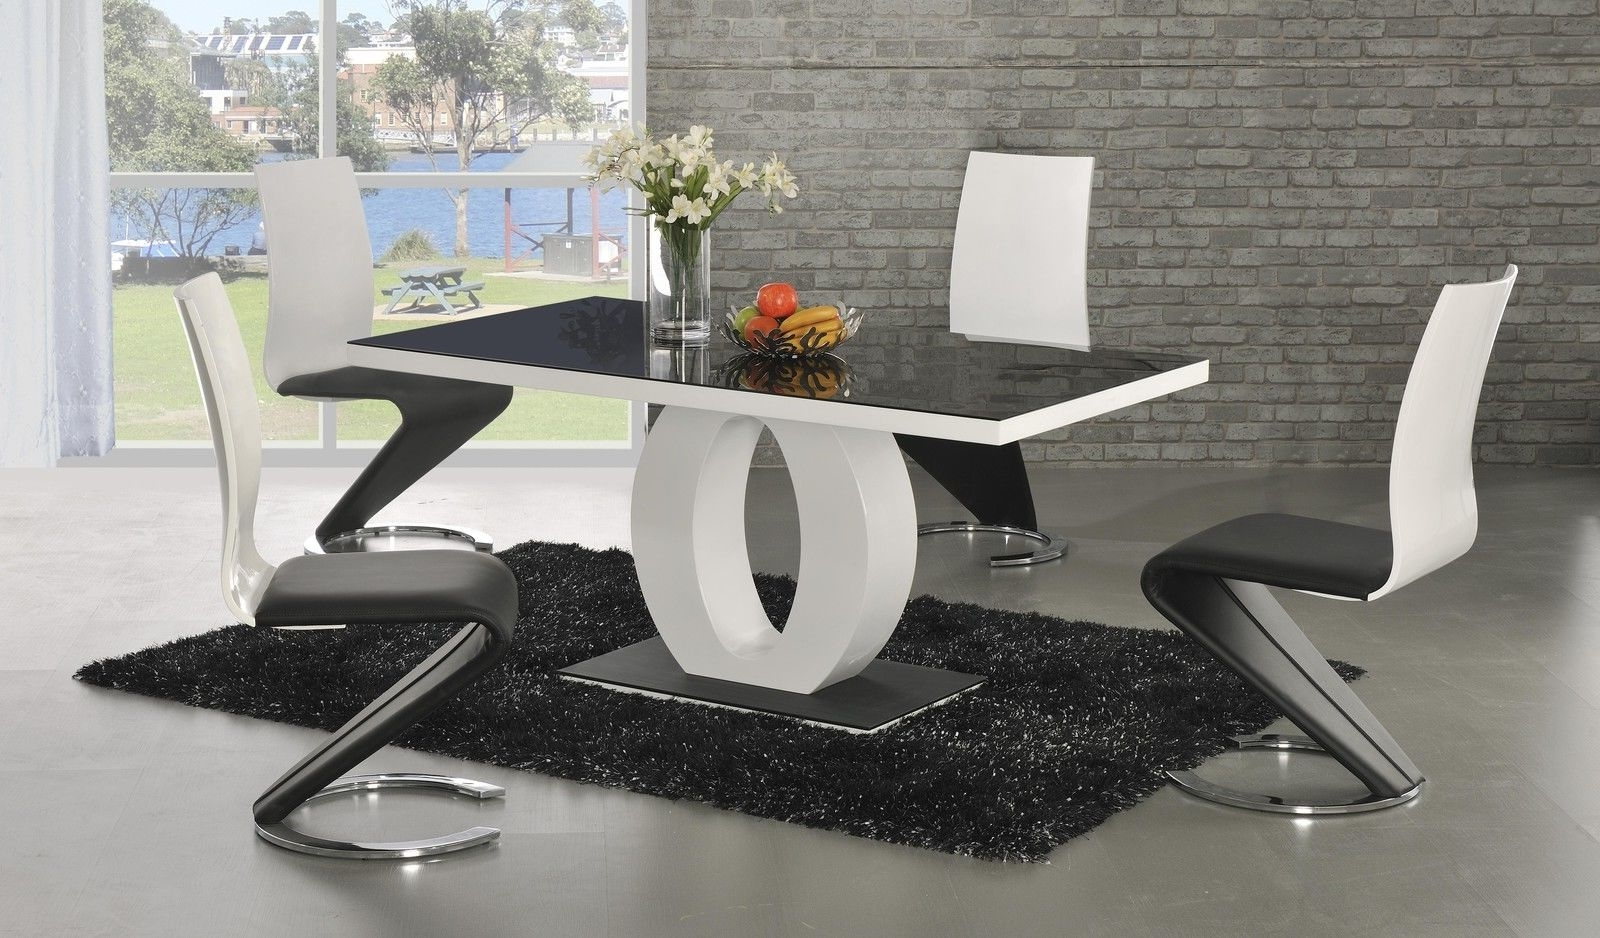 Black Gloss Dining Room Furniture Within Well Known Black And White Dining Table Set – Castrophotos (View 16 of 25)